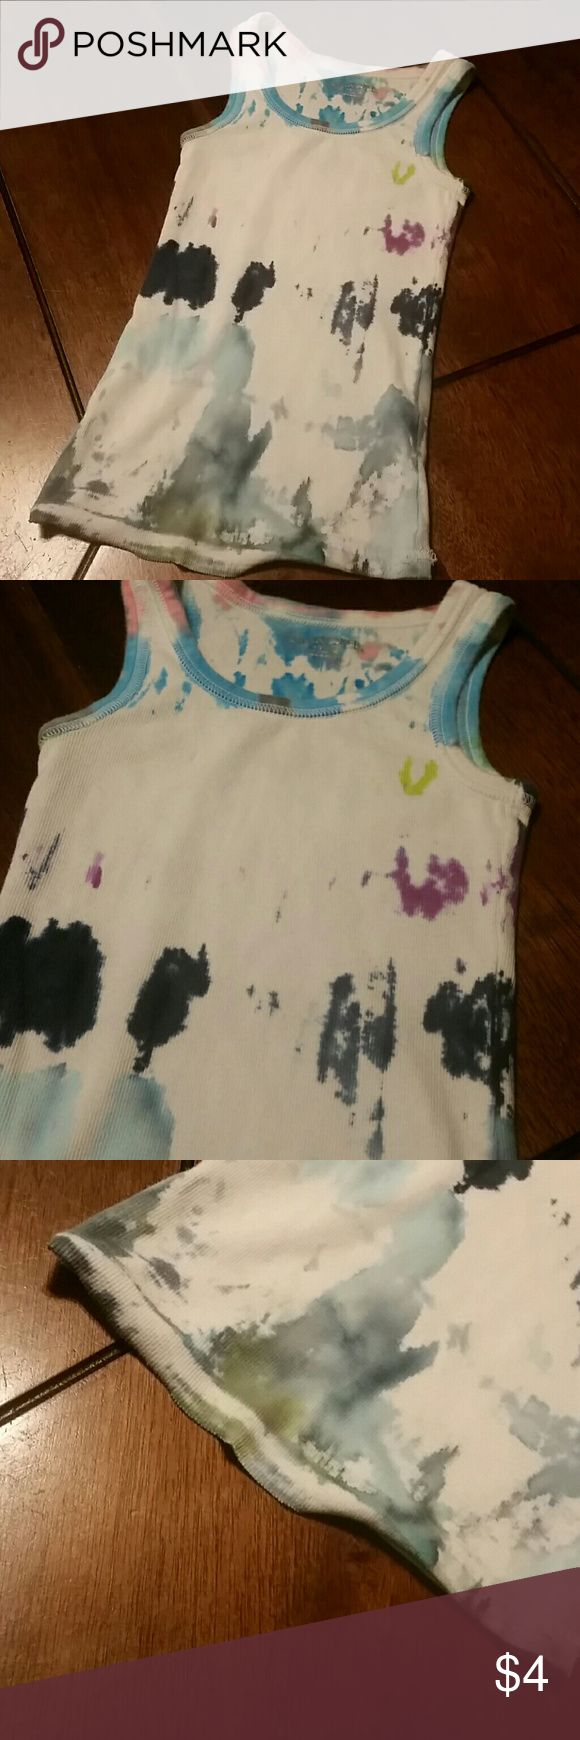 🎁 20% off 2!! 🎁 25% off 3!! 🎁 30% off 4!!🎁 Girls tie-dyed tank, white with dark blue, light blue, grey, pink, green & purple design, size small 6 - 6x, hem is coming undone as shown in photo #3 Cherokee Shirts & Tops Tank Tops